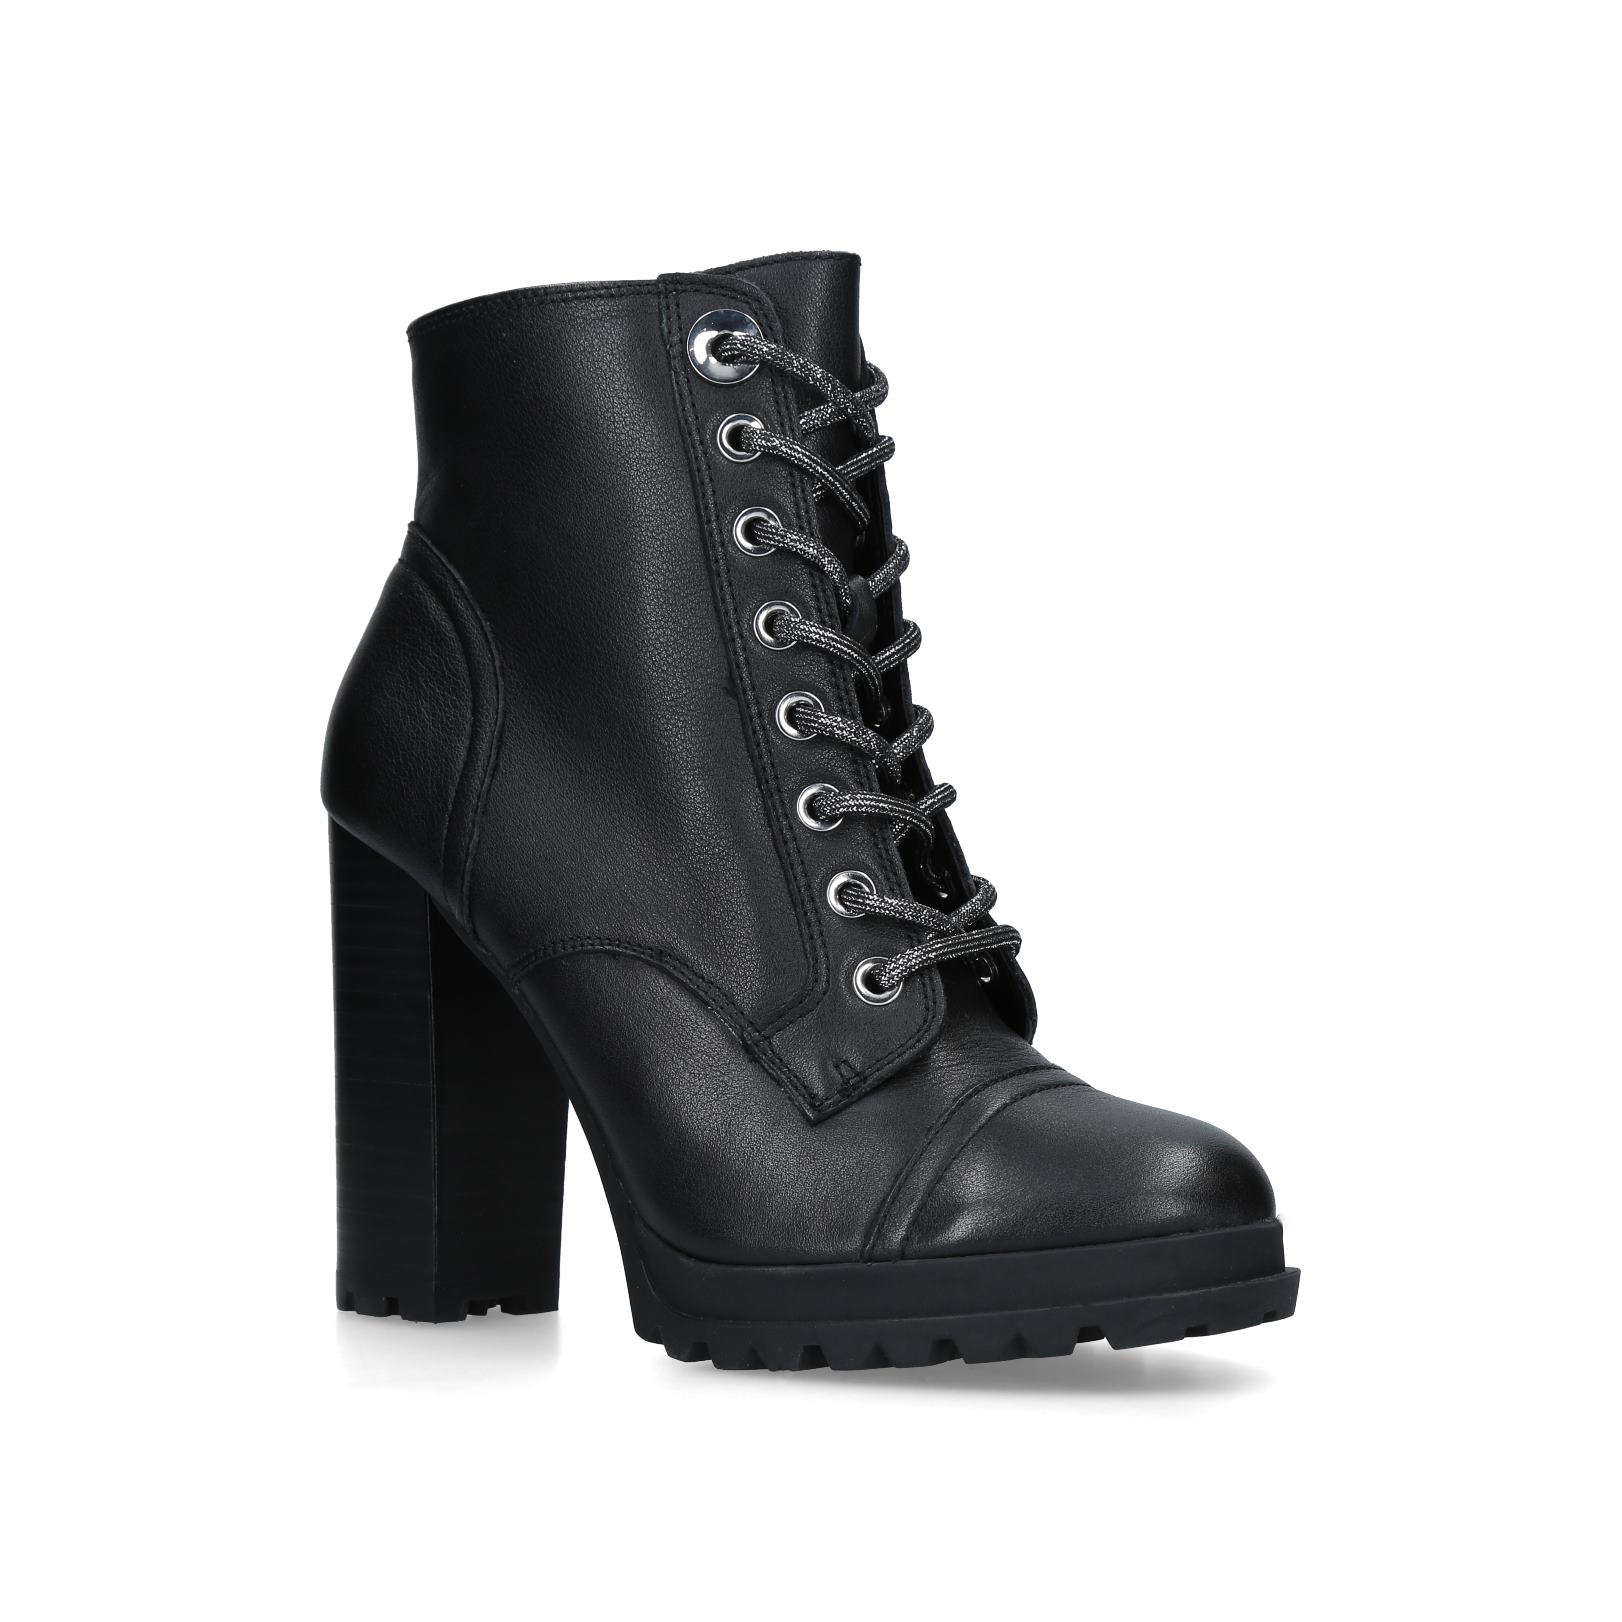 MARILLE - ALDO Ankle Boots